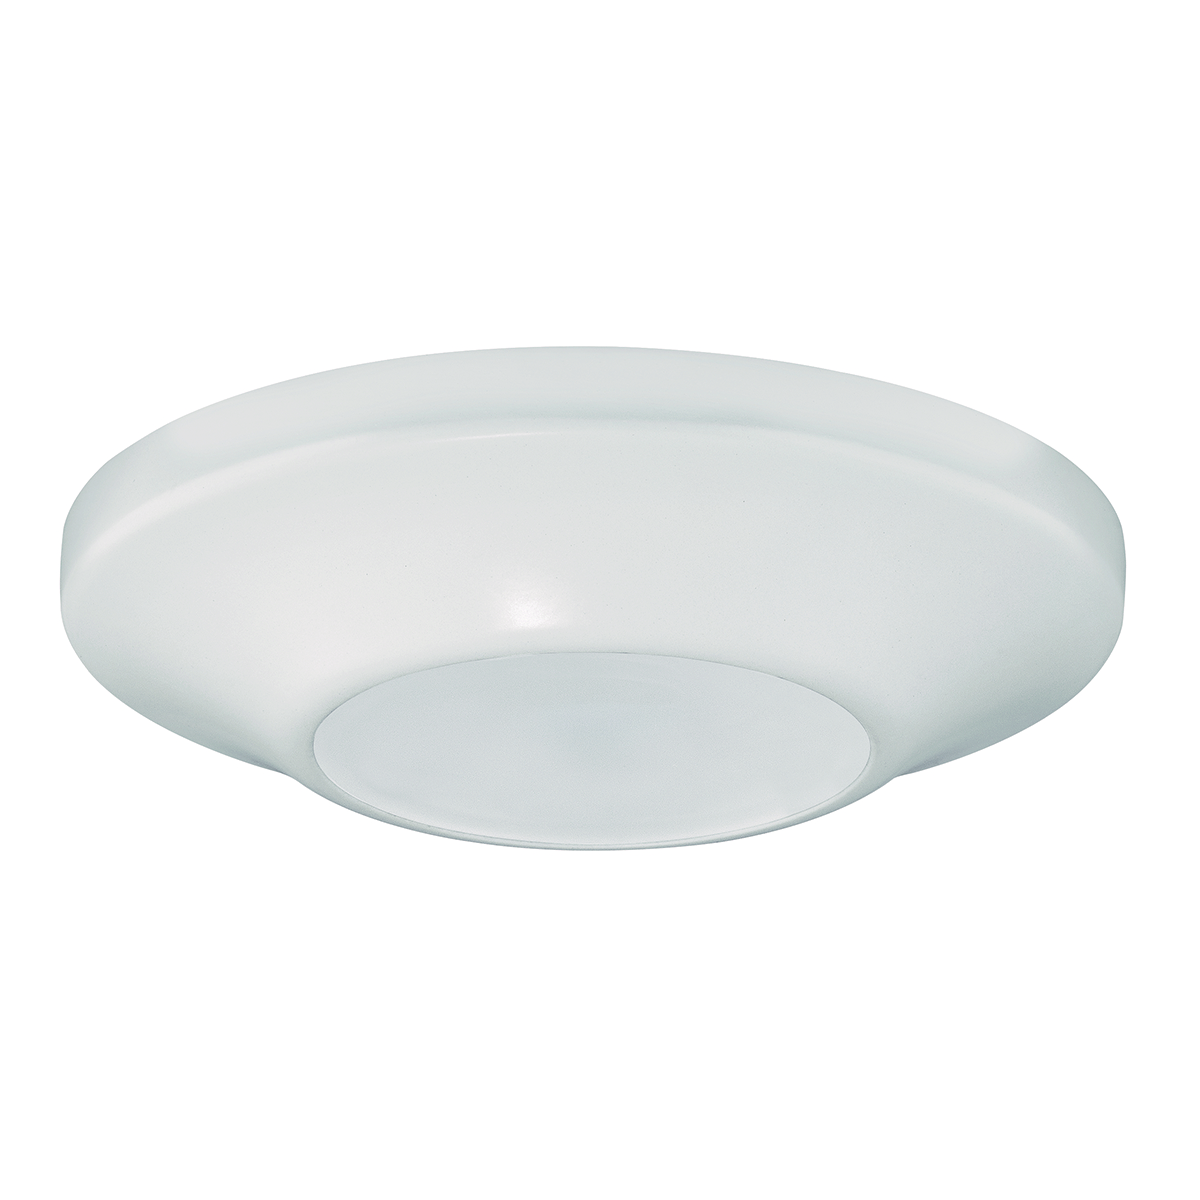 Prescolite,LBS5LEDA6L30K9 WH,LED 5IN ROUND SURFACE